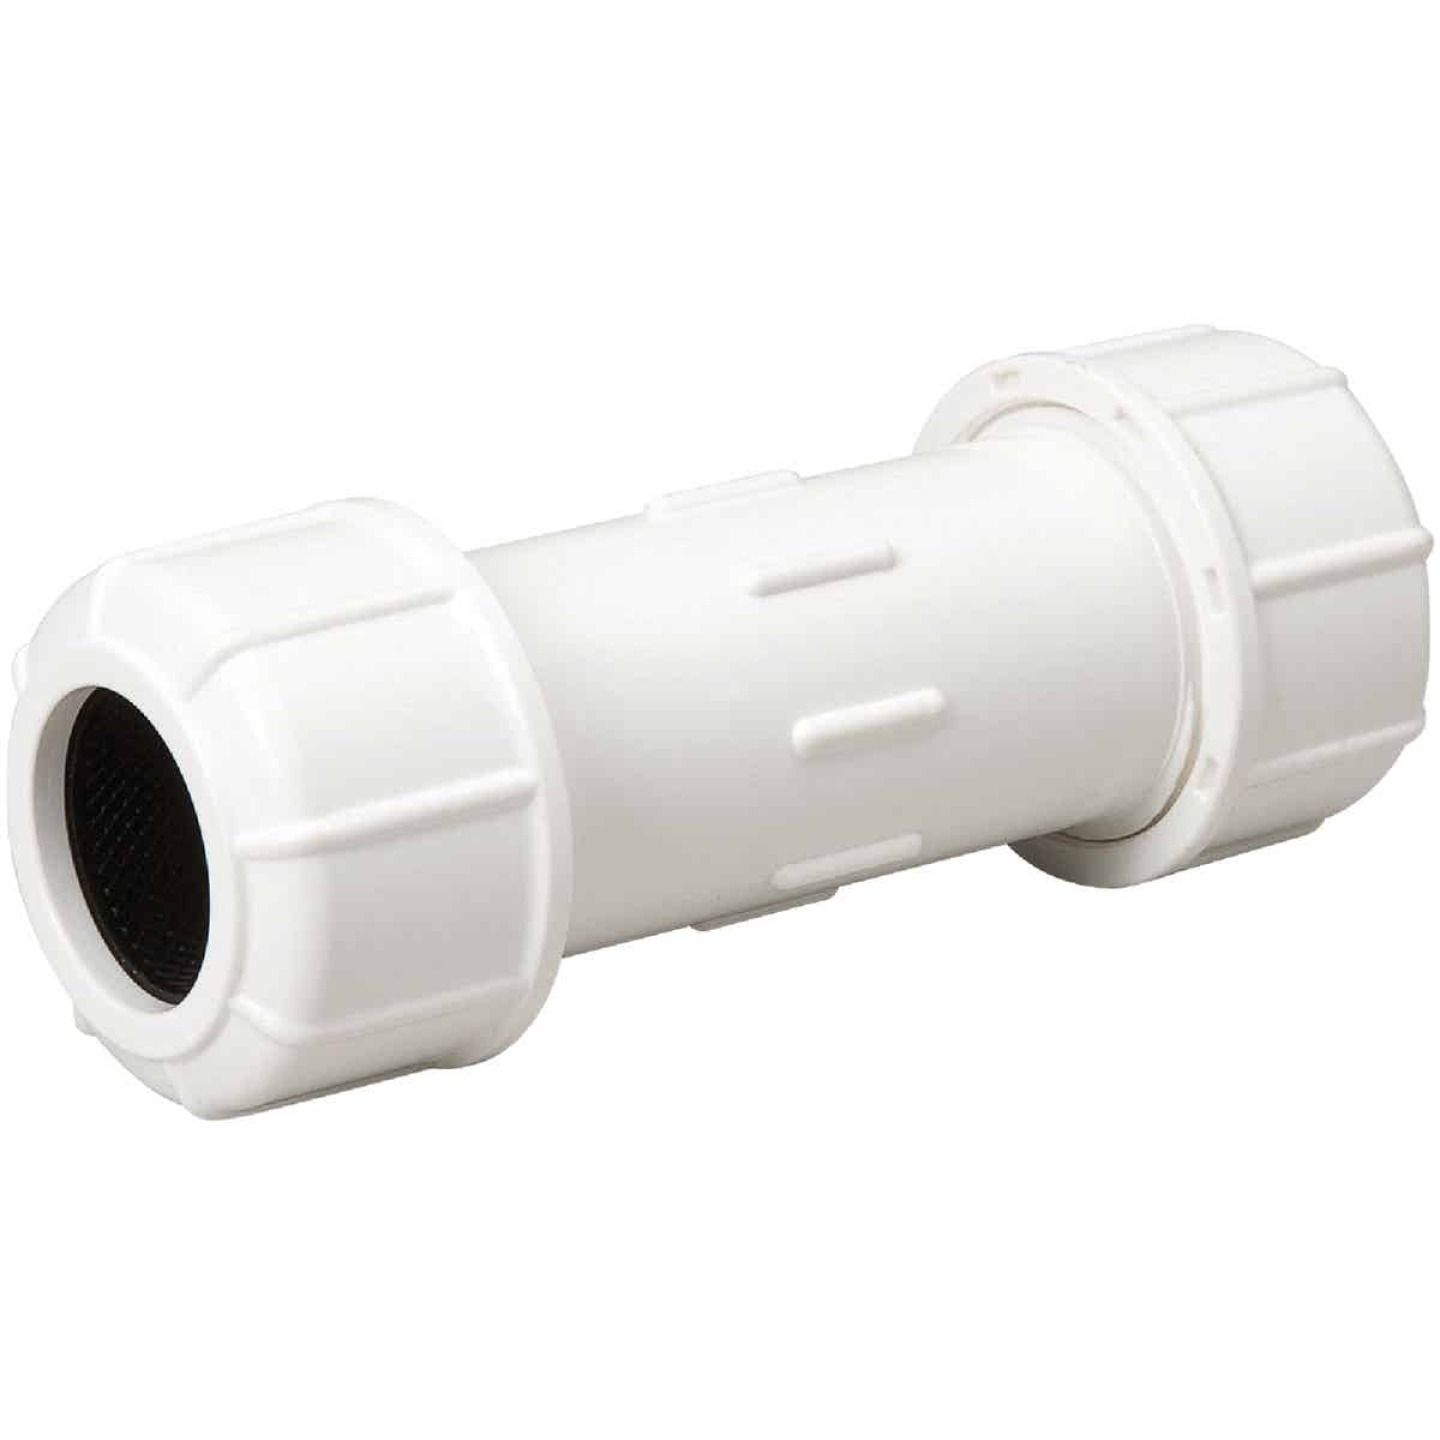 B & K 1-1/2 In. X 7 In. Compression PVC Coupling  Image 1